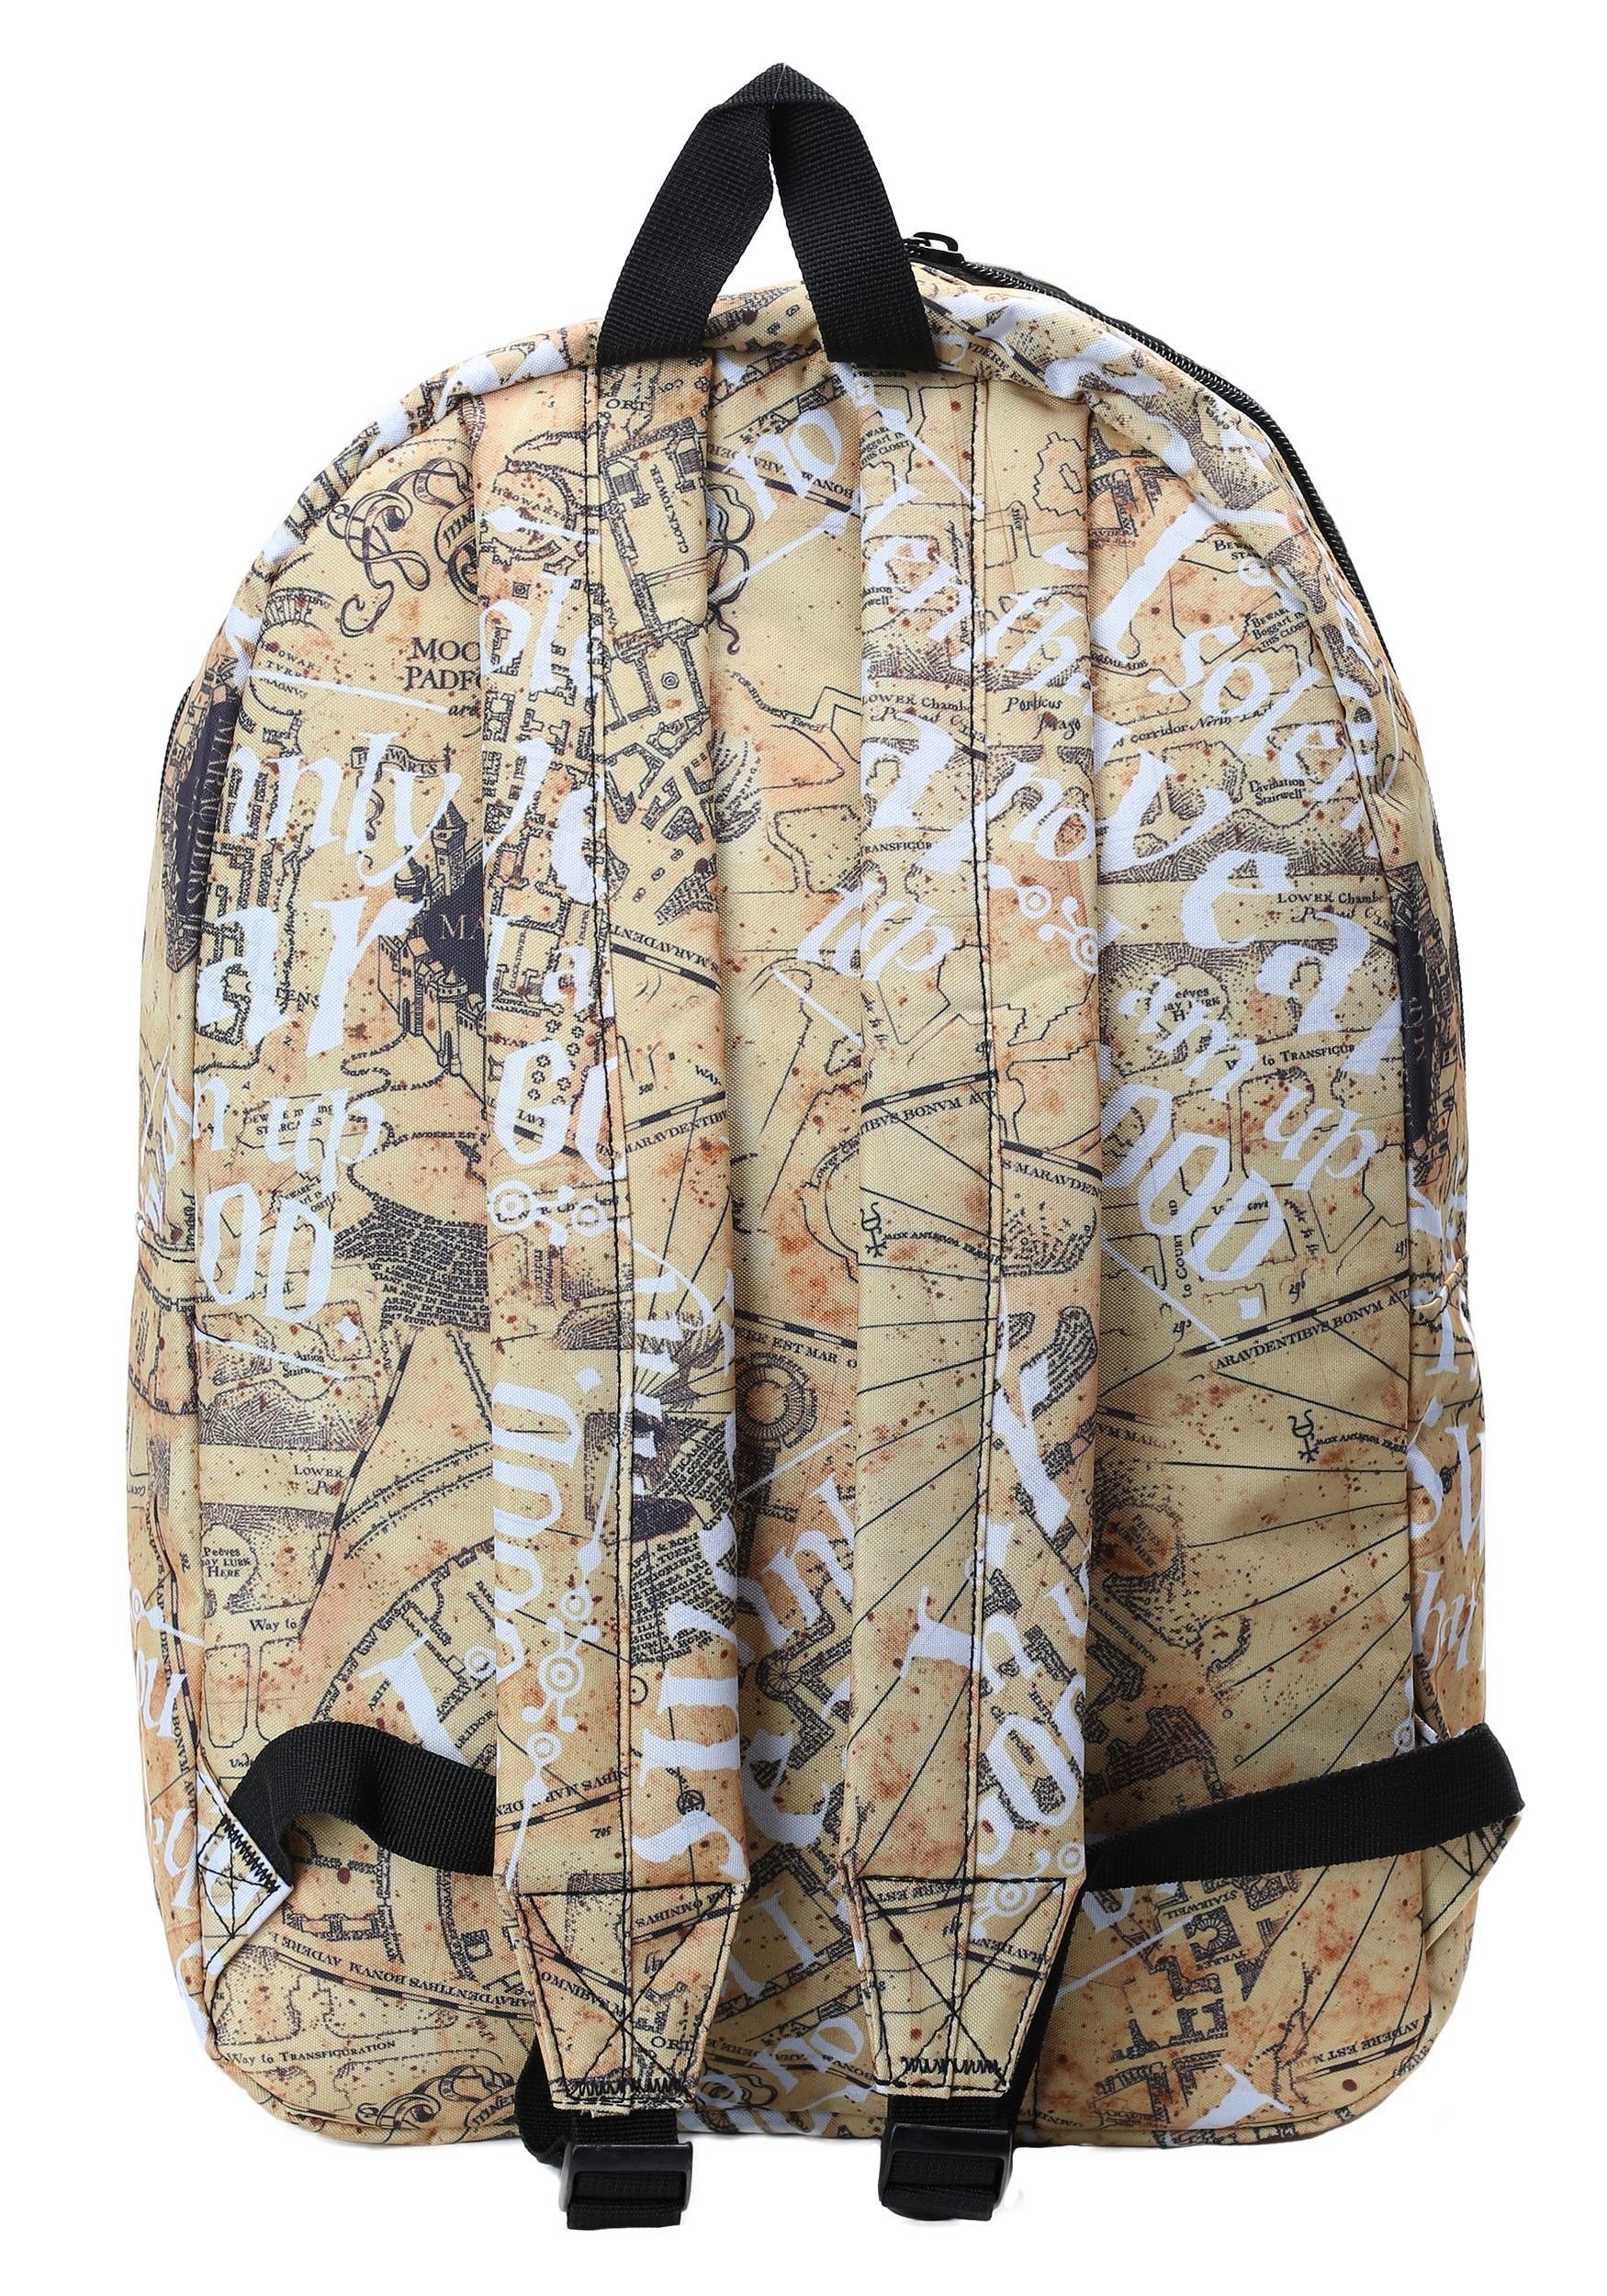 Harry potter marauders map backpack harry potter marauders map backpack